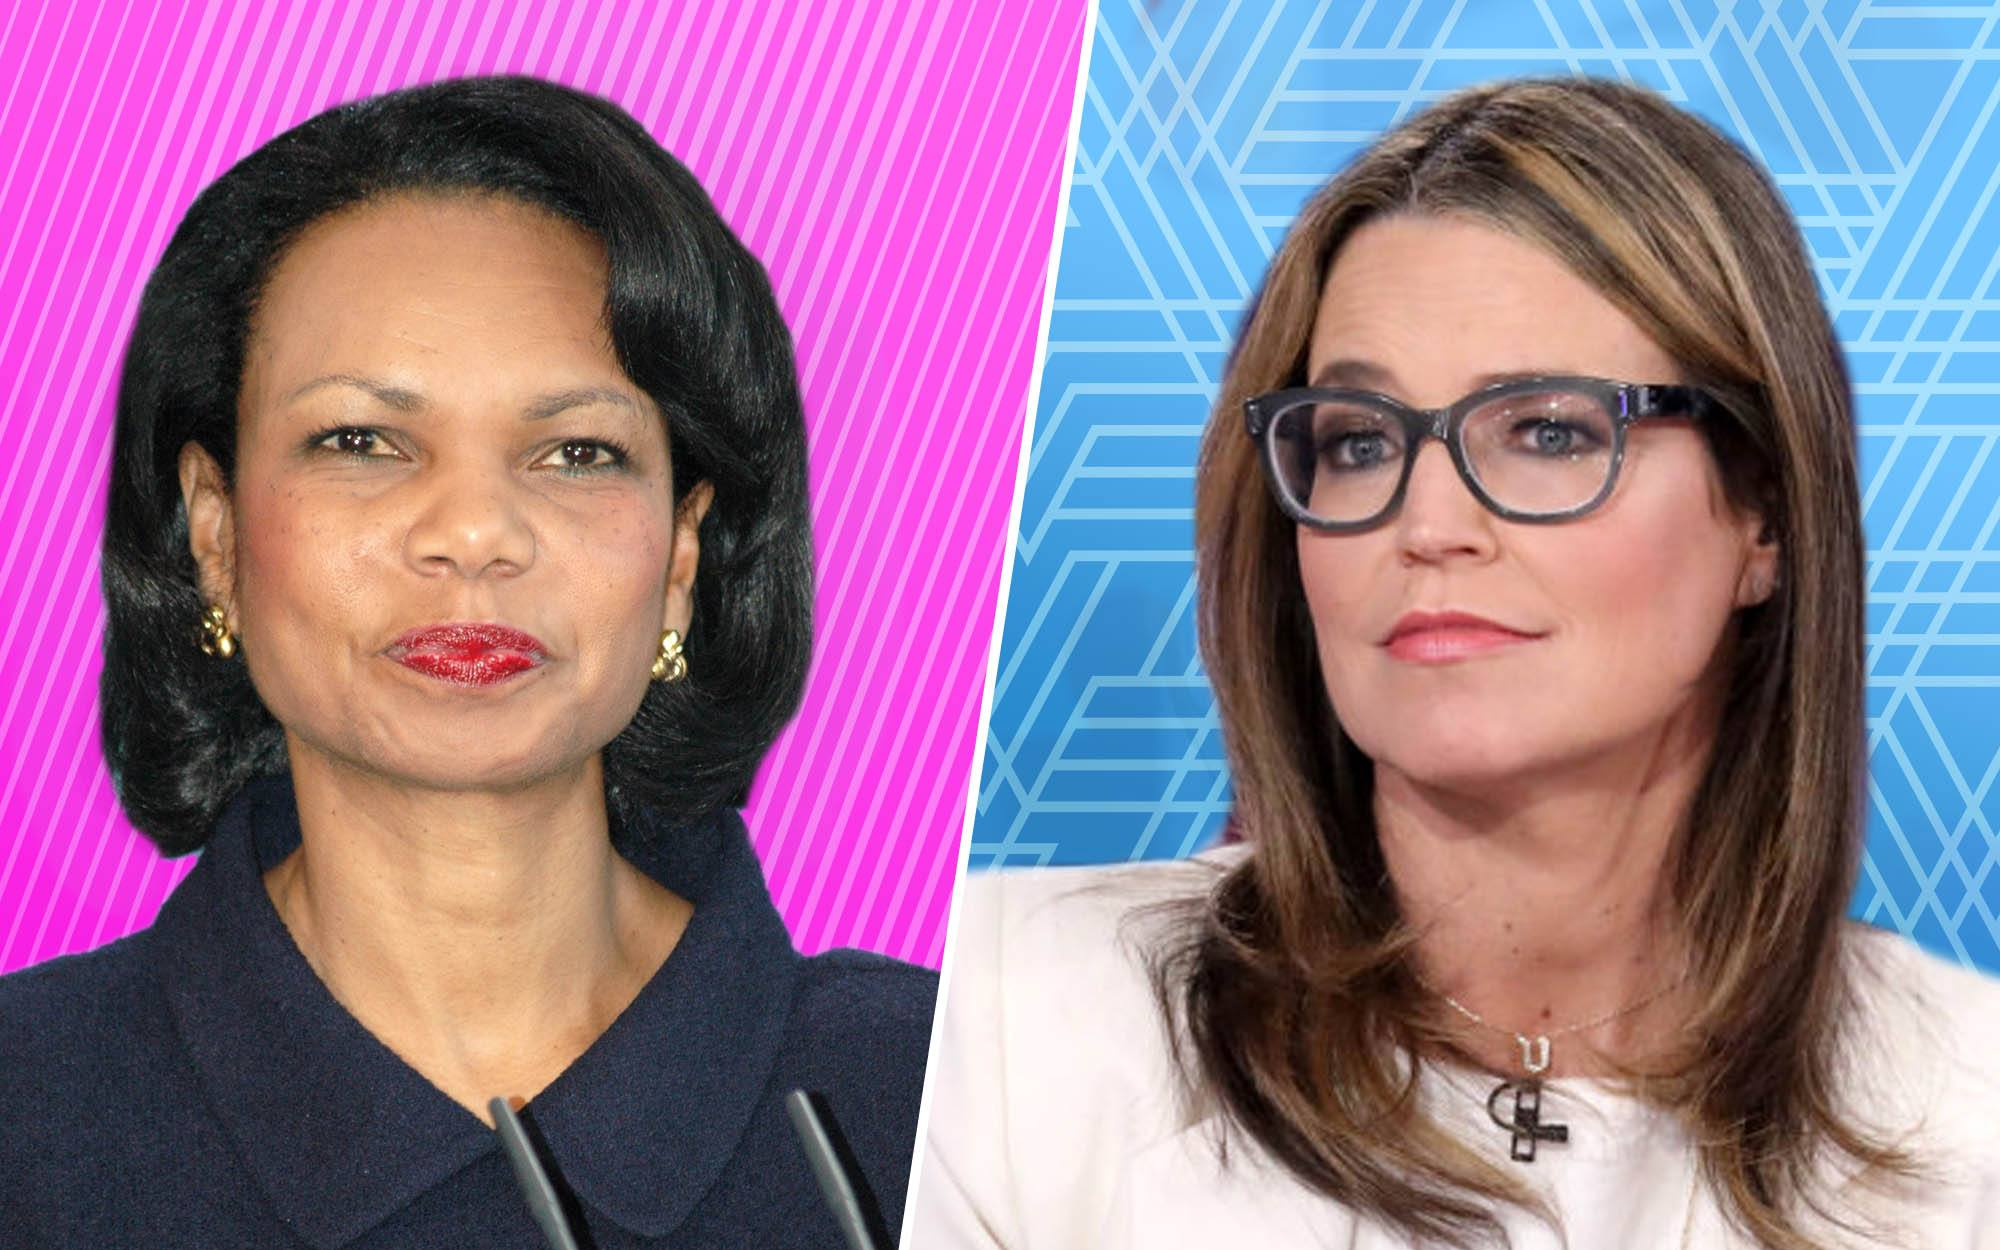 Condi Rice Shuts Down Savannah Guthrie's Line of Questioning on Russia Collusion